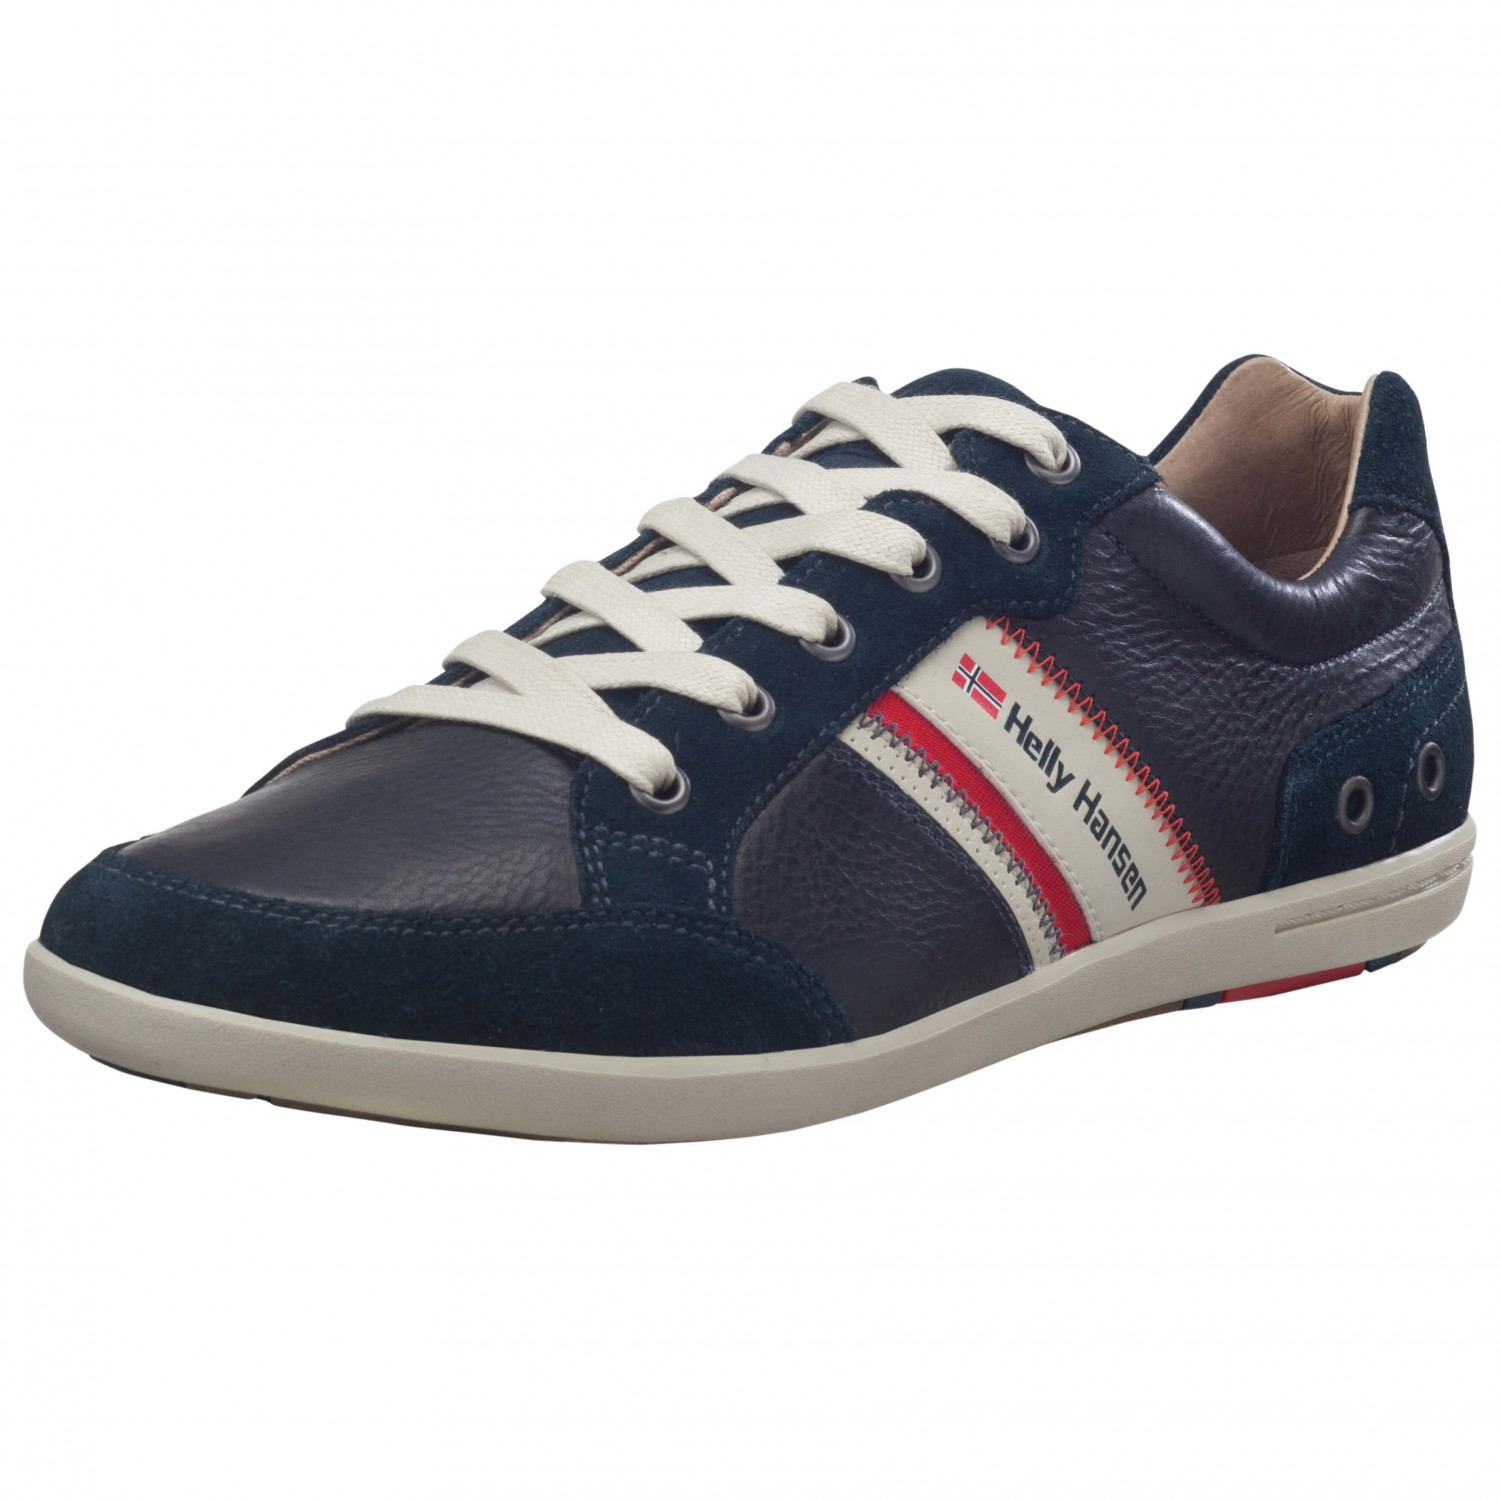 Helly Hansen - Kordel Leather - Sneaker Navy / Natura / Sperry Gum